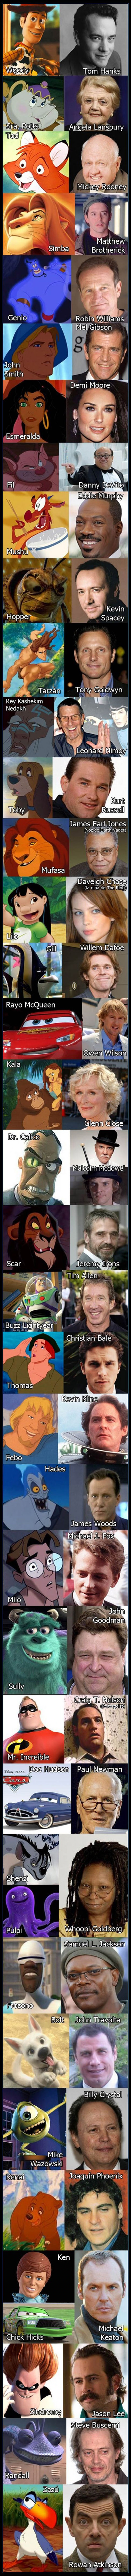 the voice behind the disney character